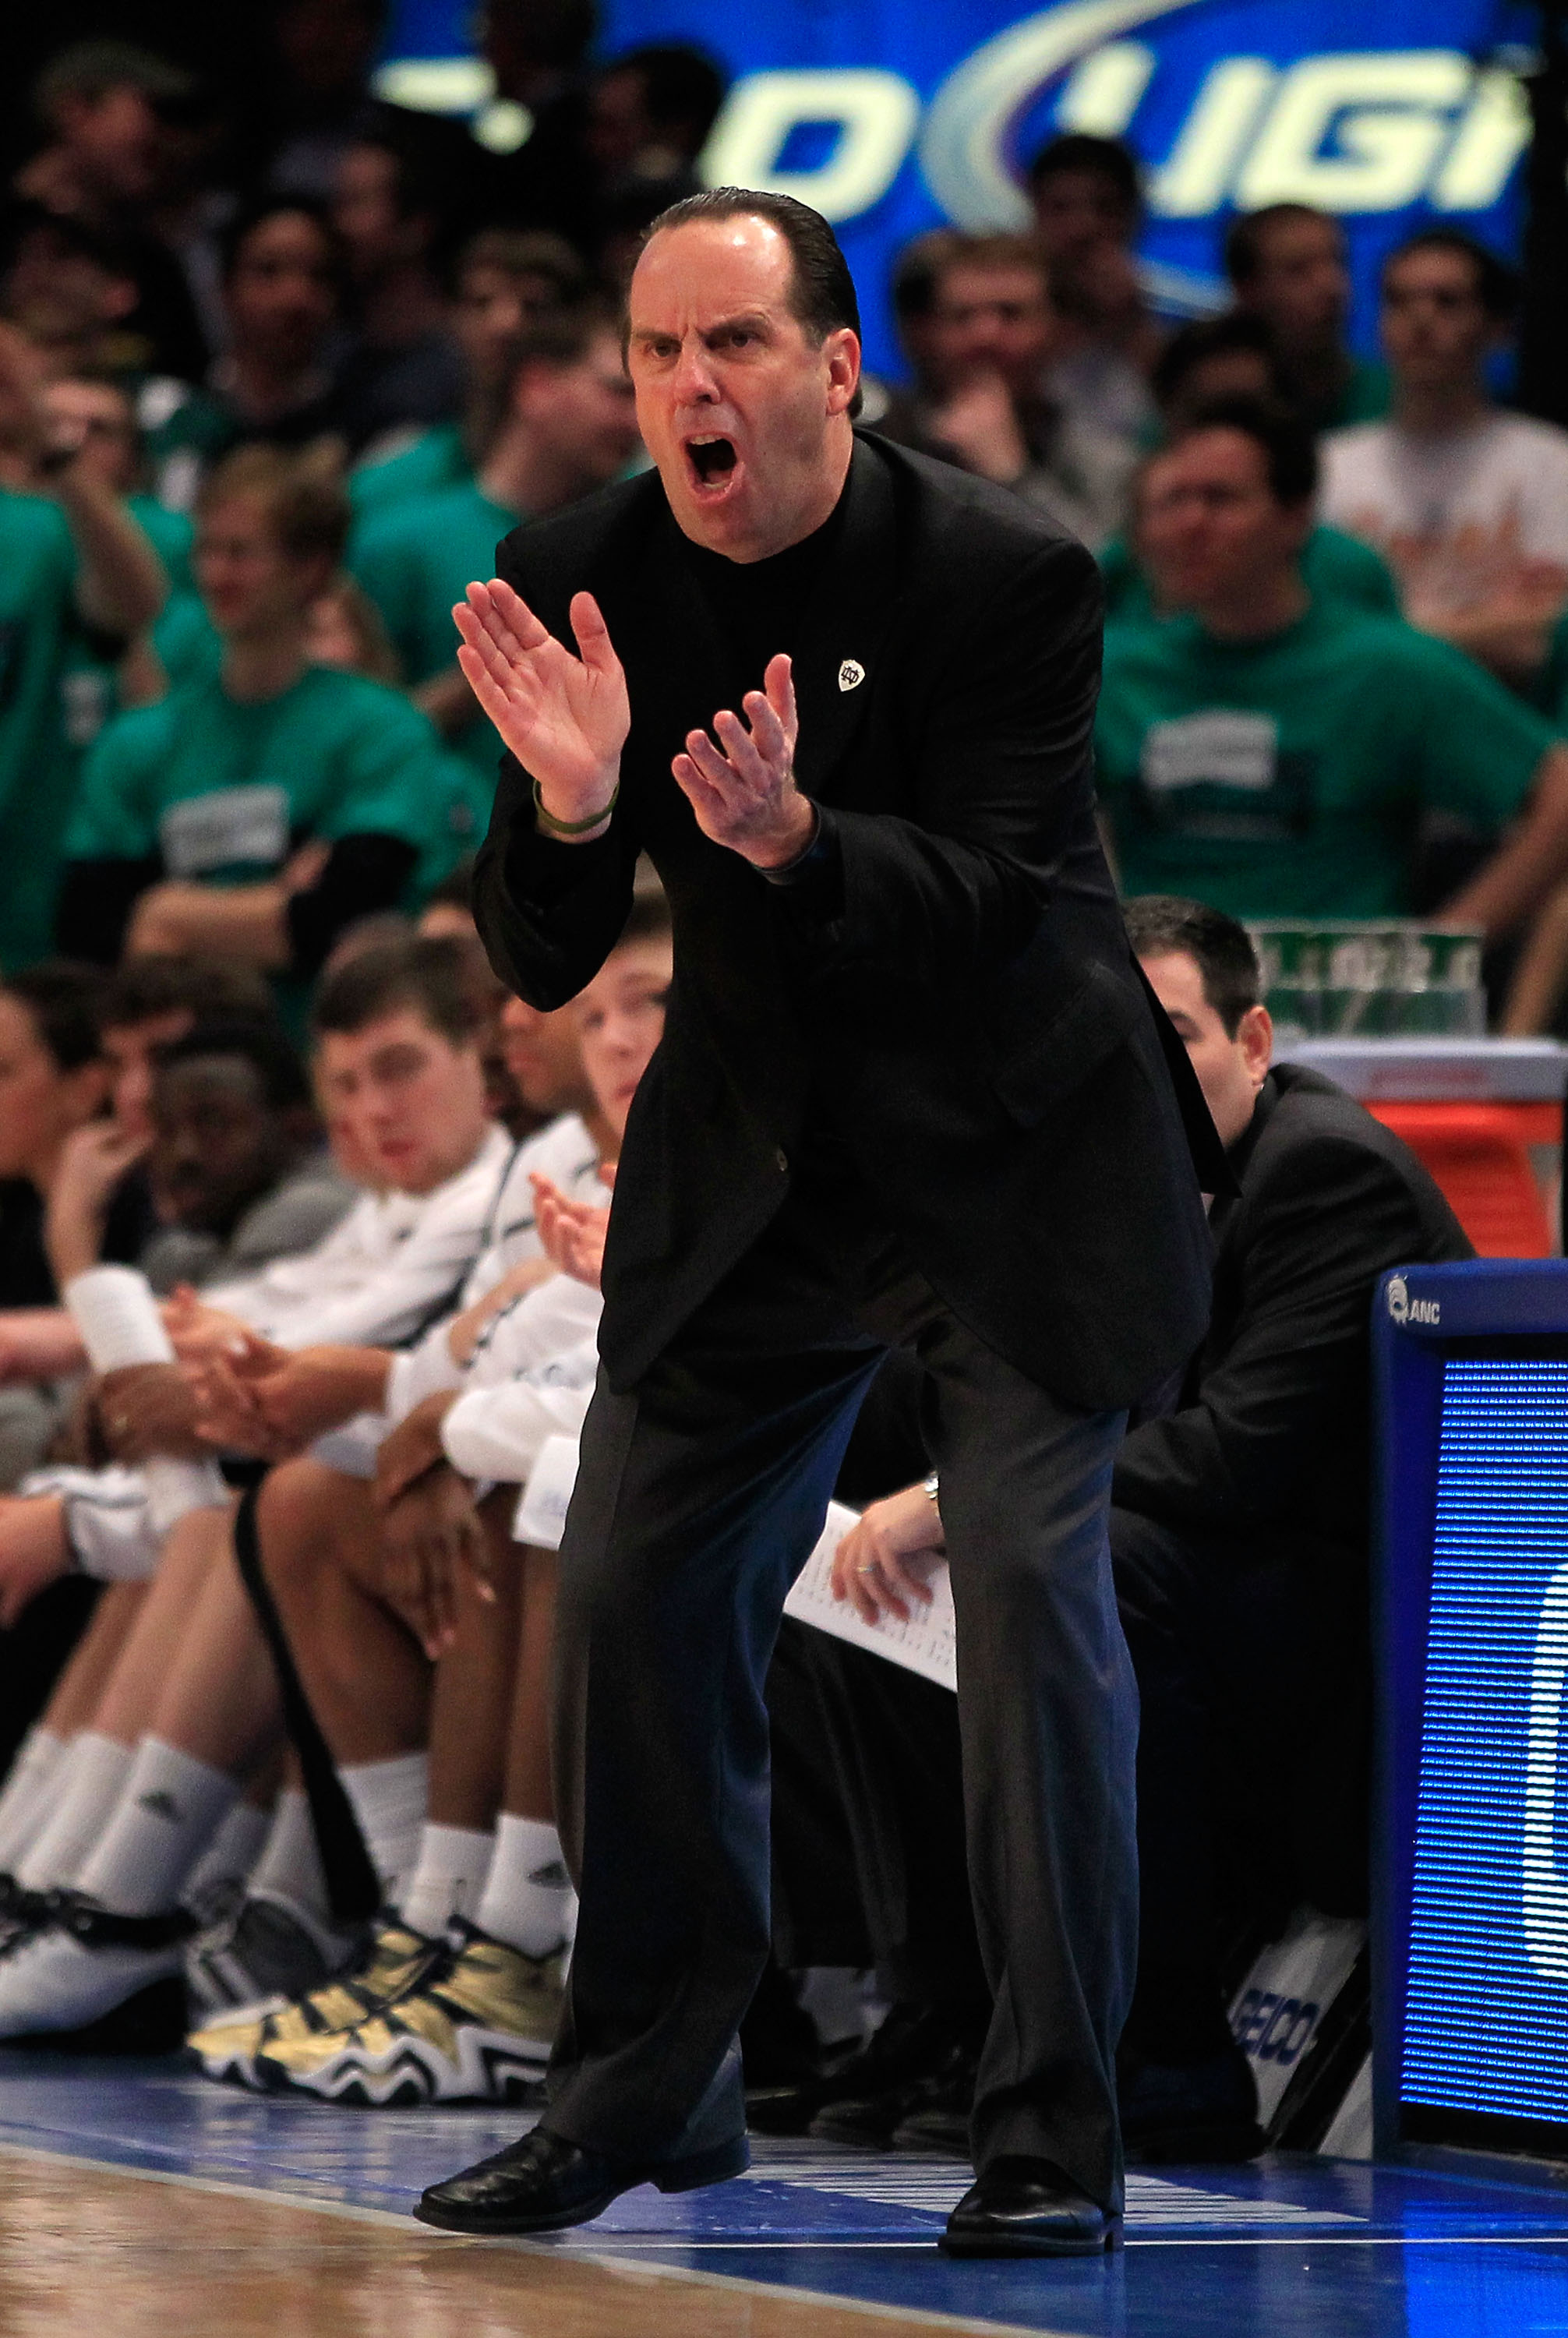 NEW YORK, NY - MARCH 10: Head coach Mike Brey of the Notre Dame Fighting Irish claps while looking on from the bench against the Cincinnati Bearcats during the quarterfinals of the 2011 Big East Men's Basketball Tournament presented by American Eagle Outf